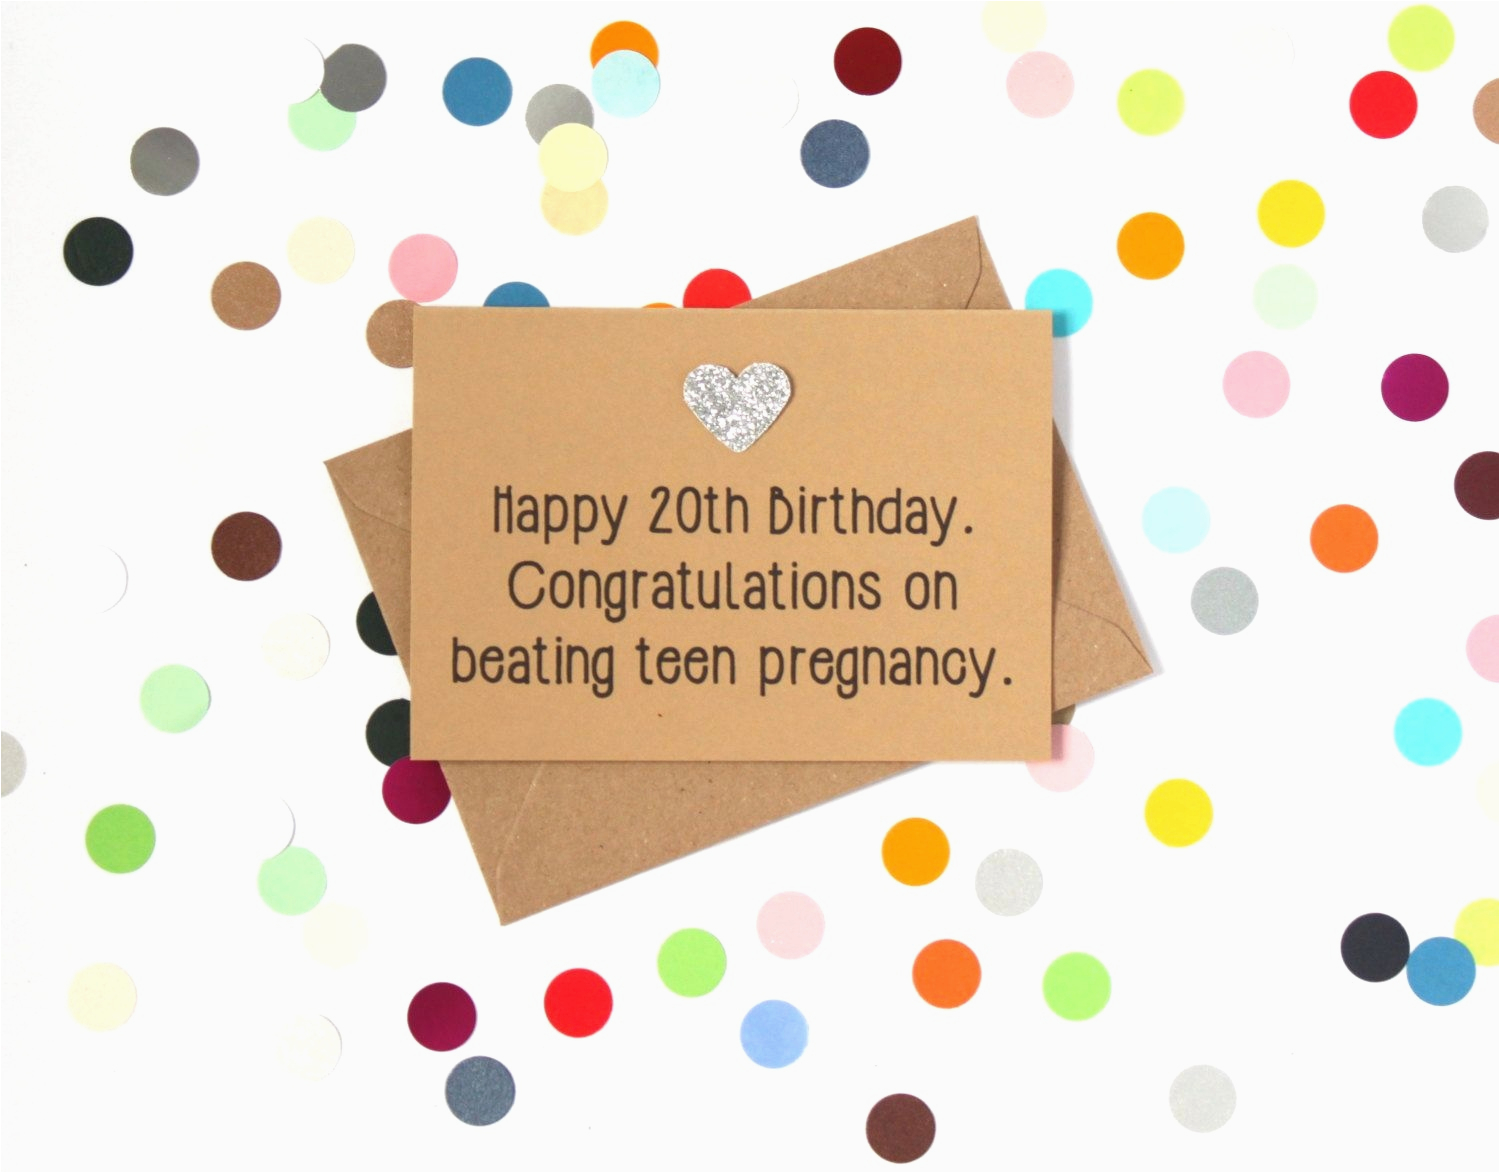 birthday card for pregnant friend best never ending singing birthday card elegant happy birthday wishes for